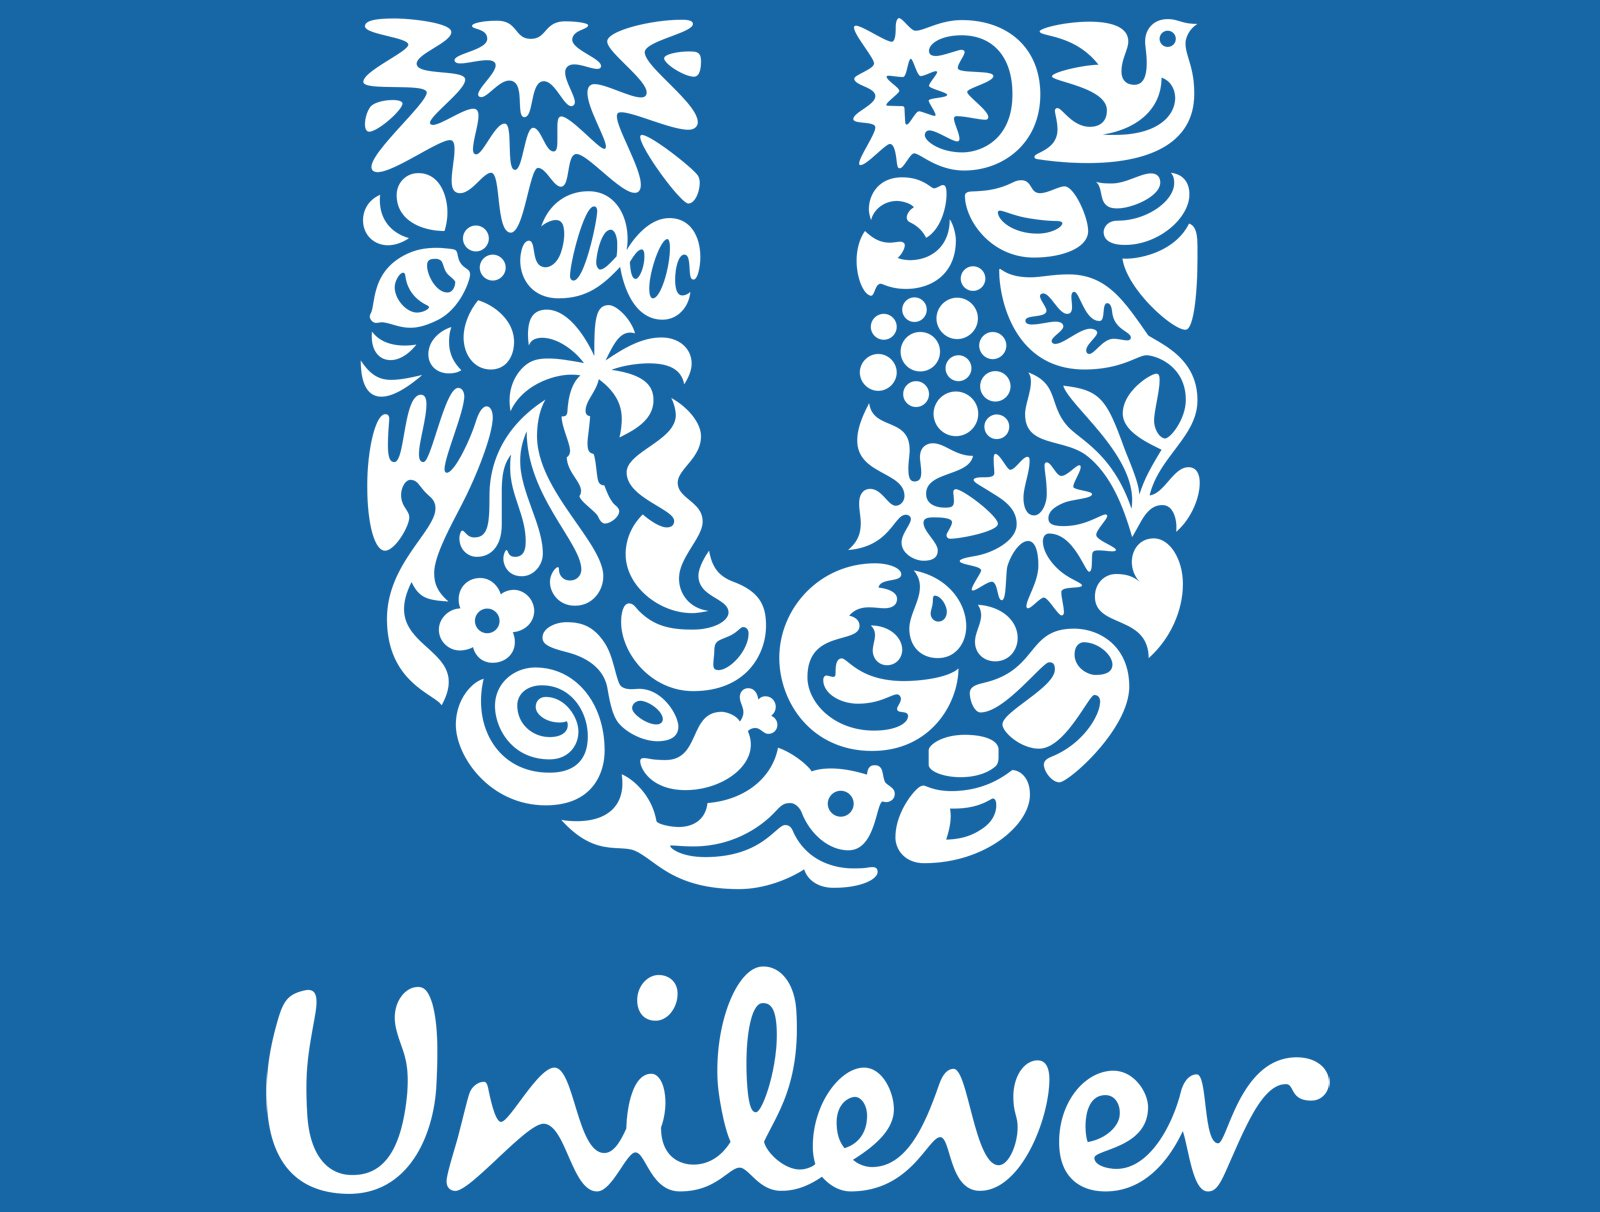 History and background of the unilever company